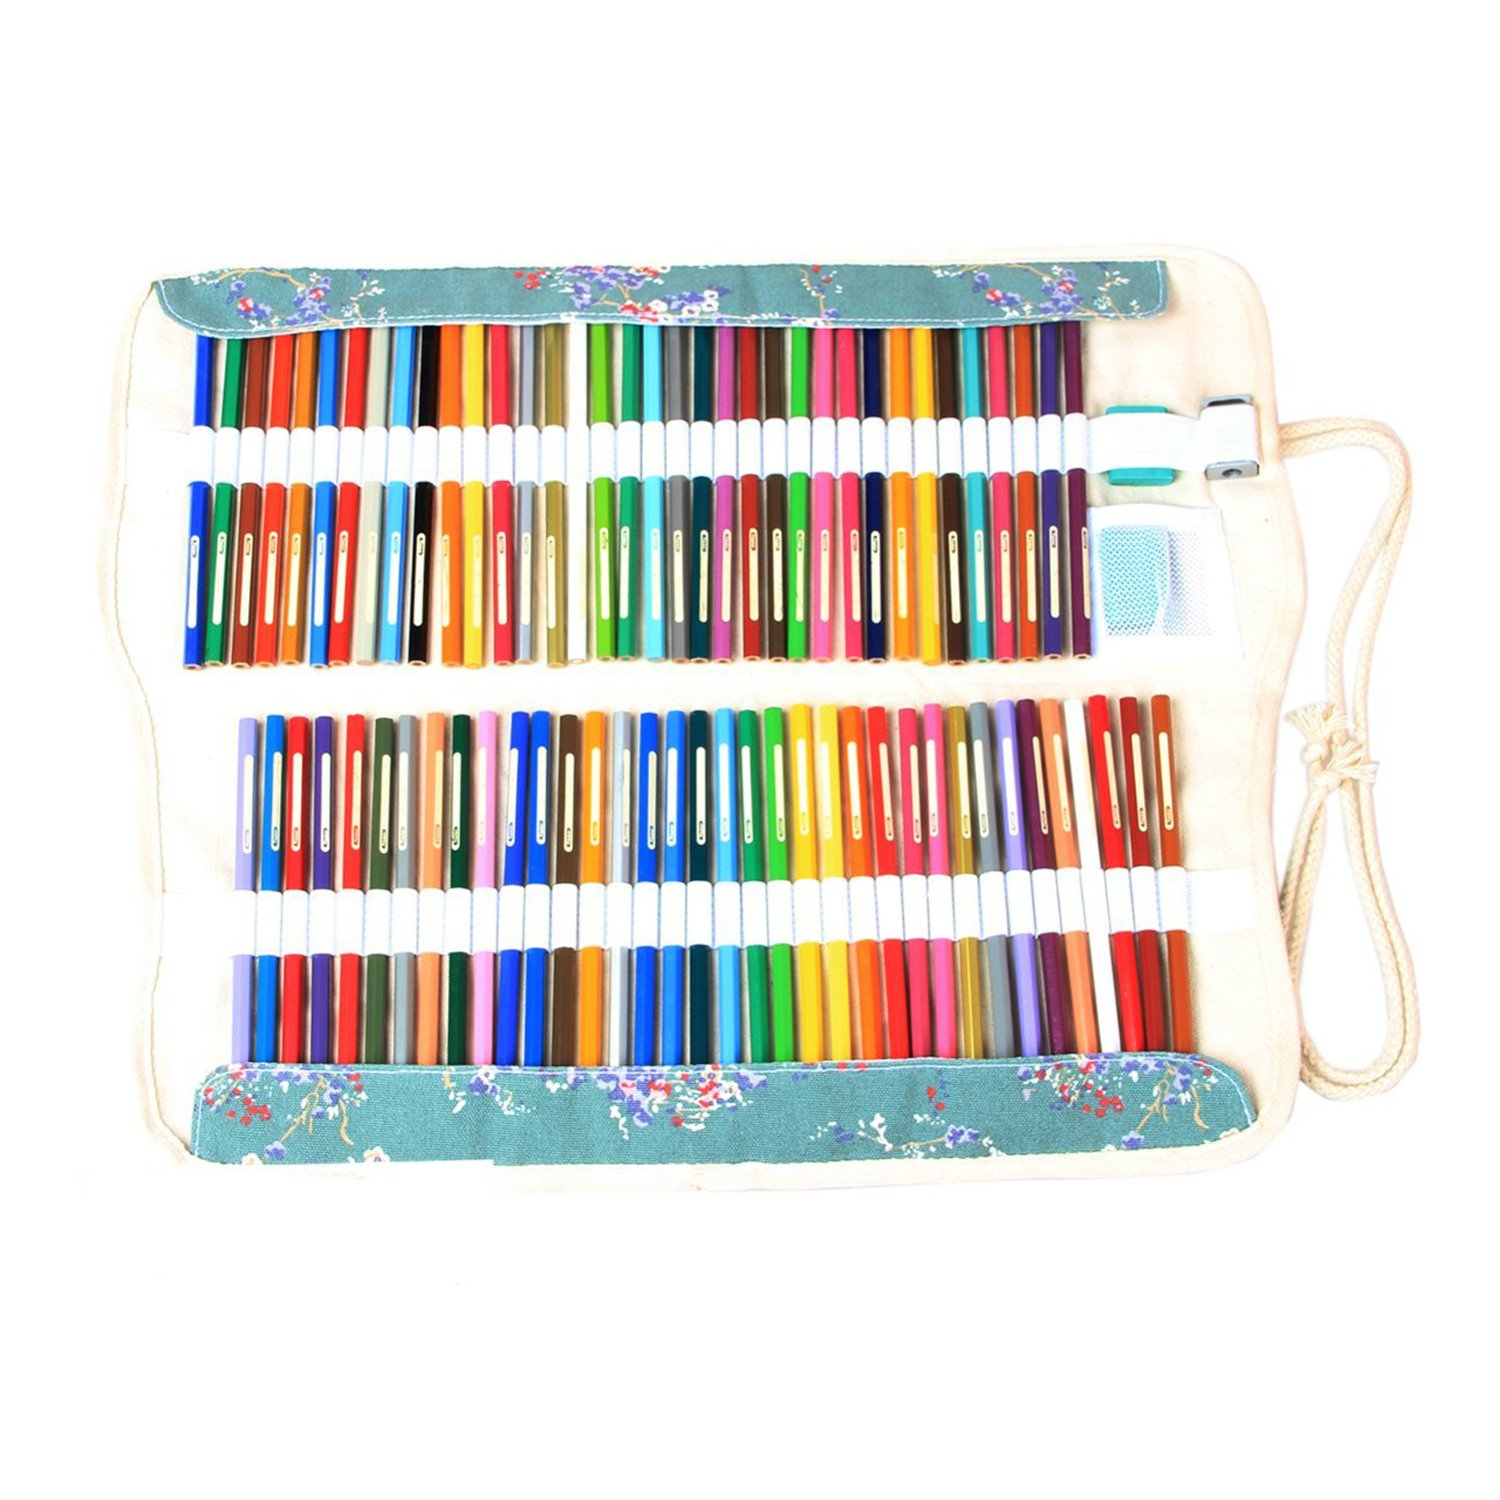 Damero Canvas Wrap for 72 Colored Pencils, Pencil Holder Case Roll Multi-purpose Pouch for School Office Art Craft, Pencil Bag for Travel (Pencils Not Included) Elephant Damai